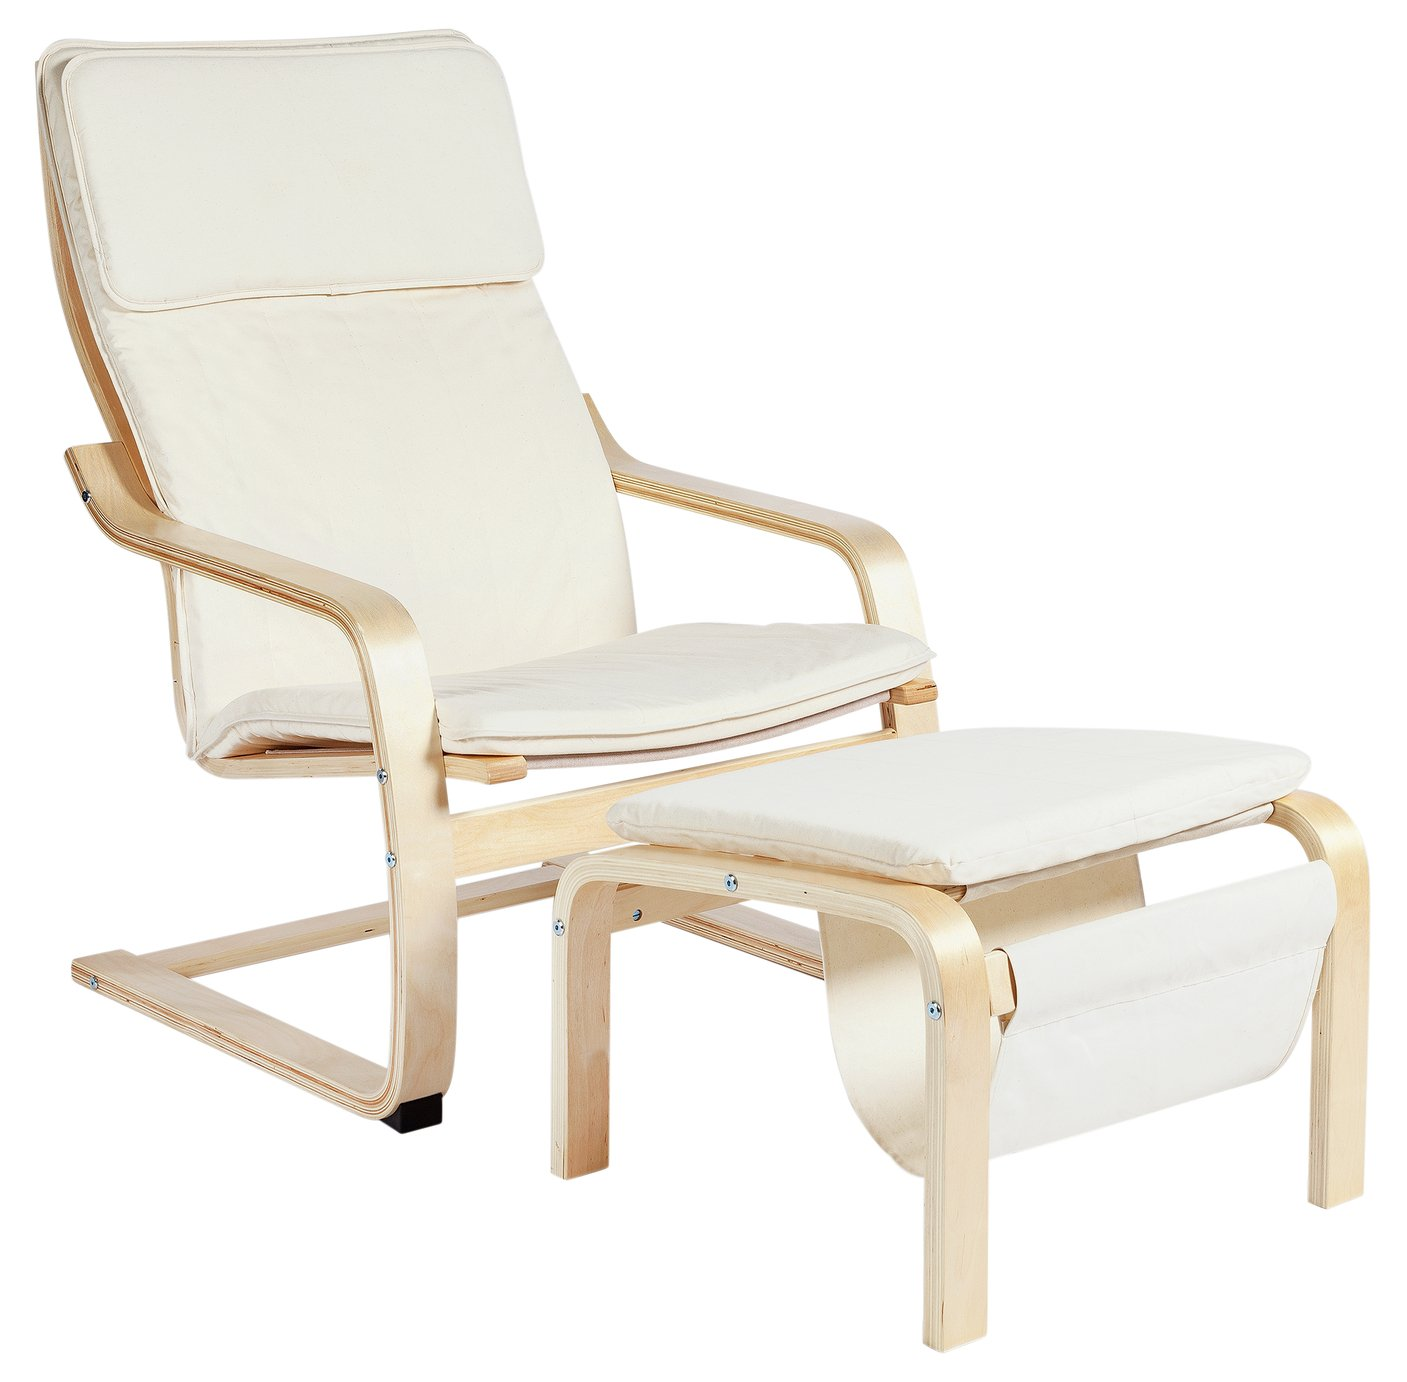 chair arm covers argos low chairs for adults buy home bentwood high back footstool natural